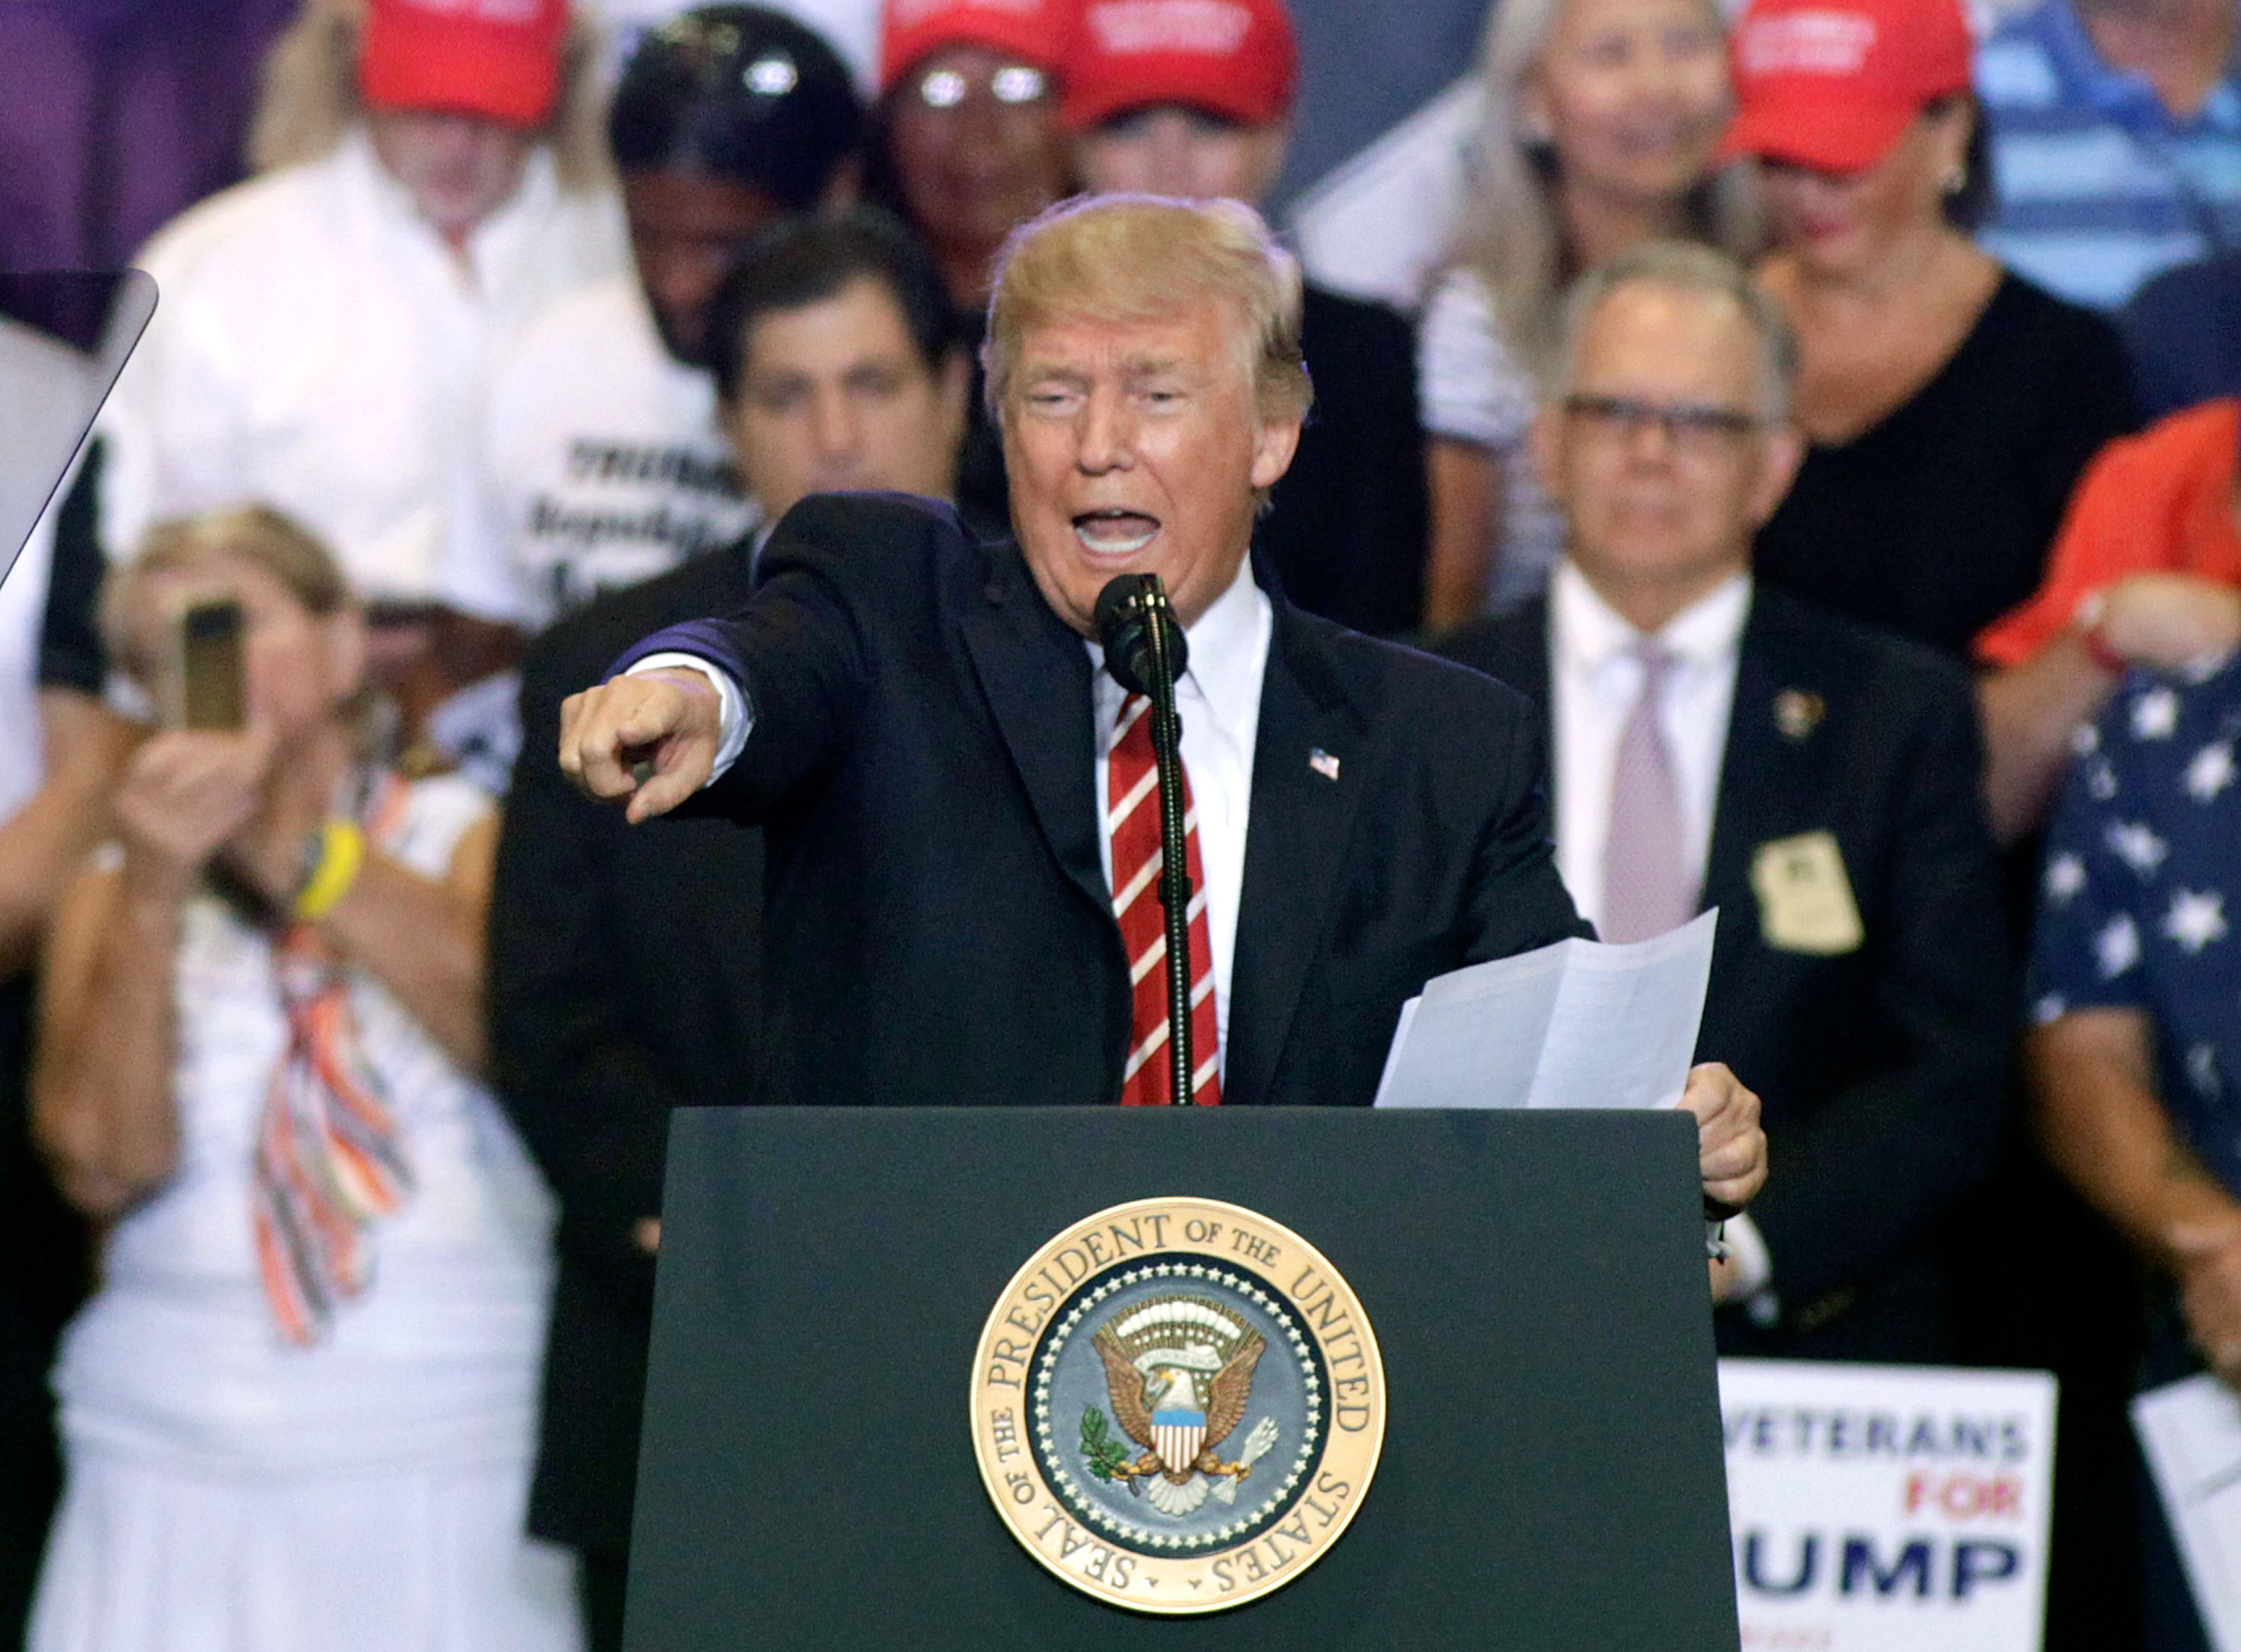 President Donald Trump speaks to supporters at the Phoenix Convention Center during a rally in Phoenix, Arizona on Aug. 22, 2017. (Ralph Freso/Getty Images)